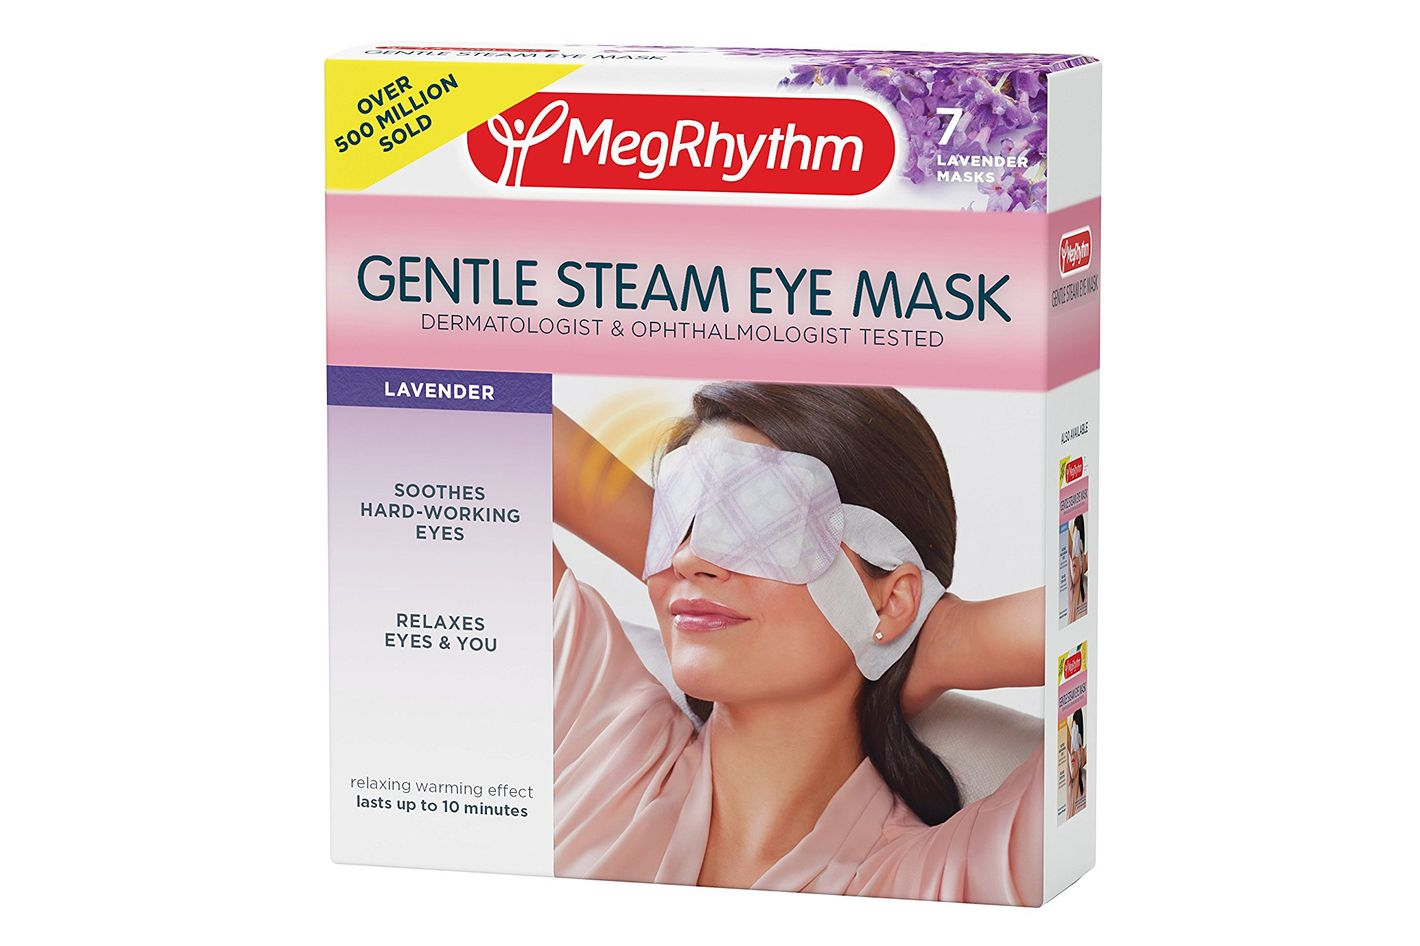 MegRhythm Lavender Gentle Steam Eye Mask